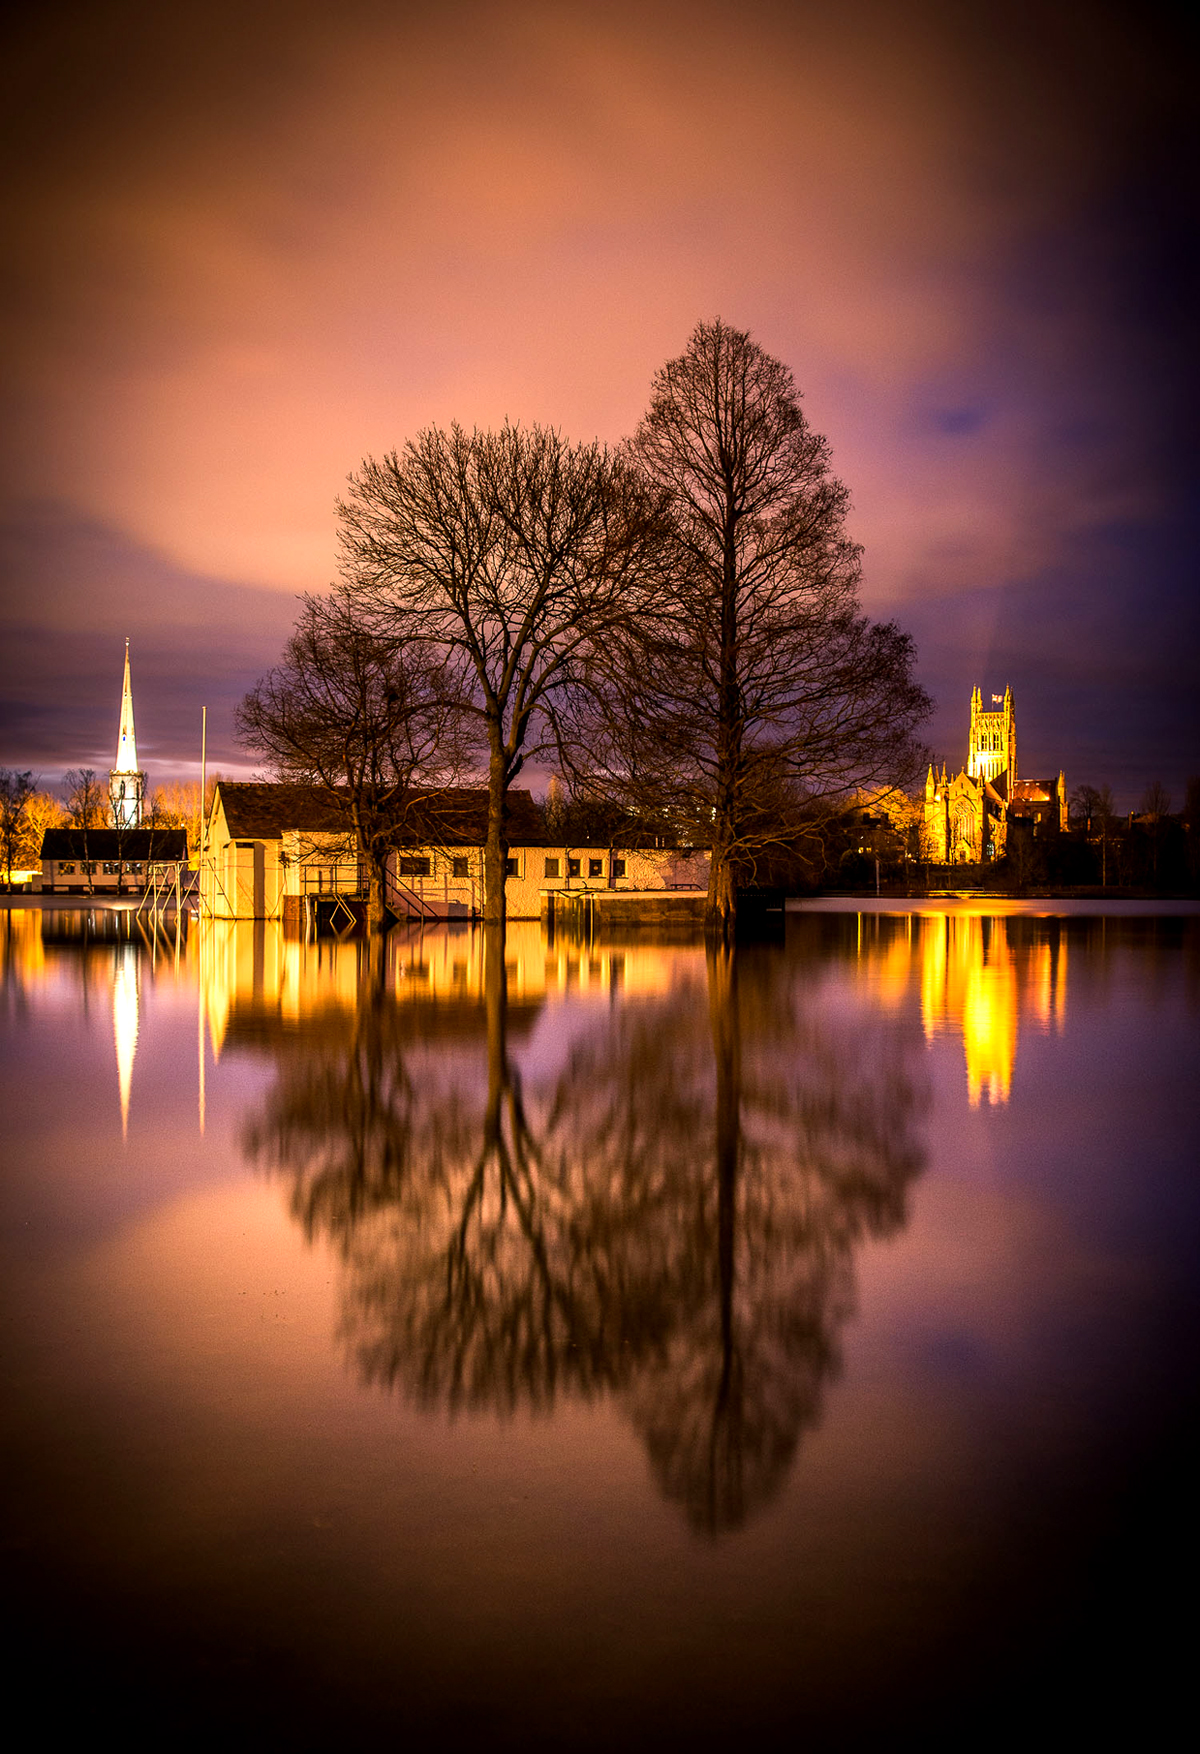 Worcester Cathedral basks in the evening light, reflected in floodwater. Picture by Jan Sedlacek.